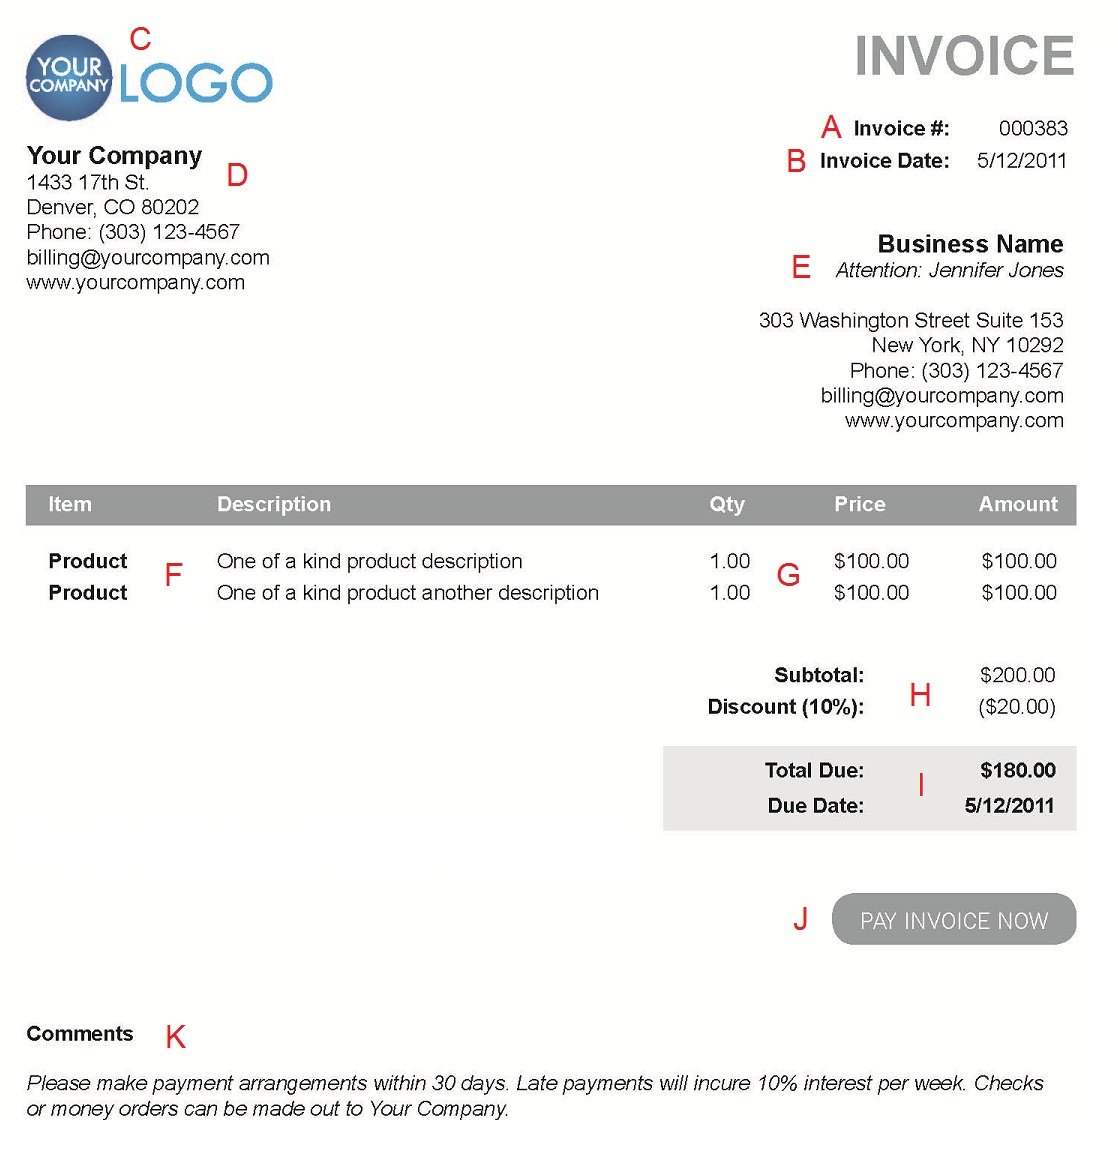 Coolmathgamesus  Gorgeous The  Different Sections Of An Electronic Payment Invoice With Fair A  With Delightful Contractor Invoice Sample Also Honda Pilot Invoice In Addition Easy Invoice Software And Invoice Mean As Well As Invoice Approval Additionally Making Invoices From Paysimplecom With Coolmathgamesus  Fair The  Different Sections Of An Electronic Payment Invoice With Delightful A  And Gorgeous Contractor Invoice Sample Also Honda Pilot Invoice In Addition Easy Invoice Software From Paysimplecom